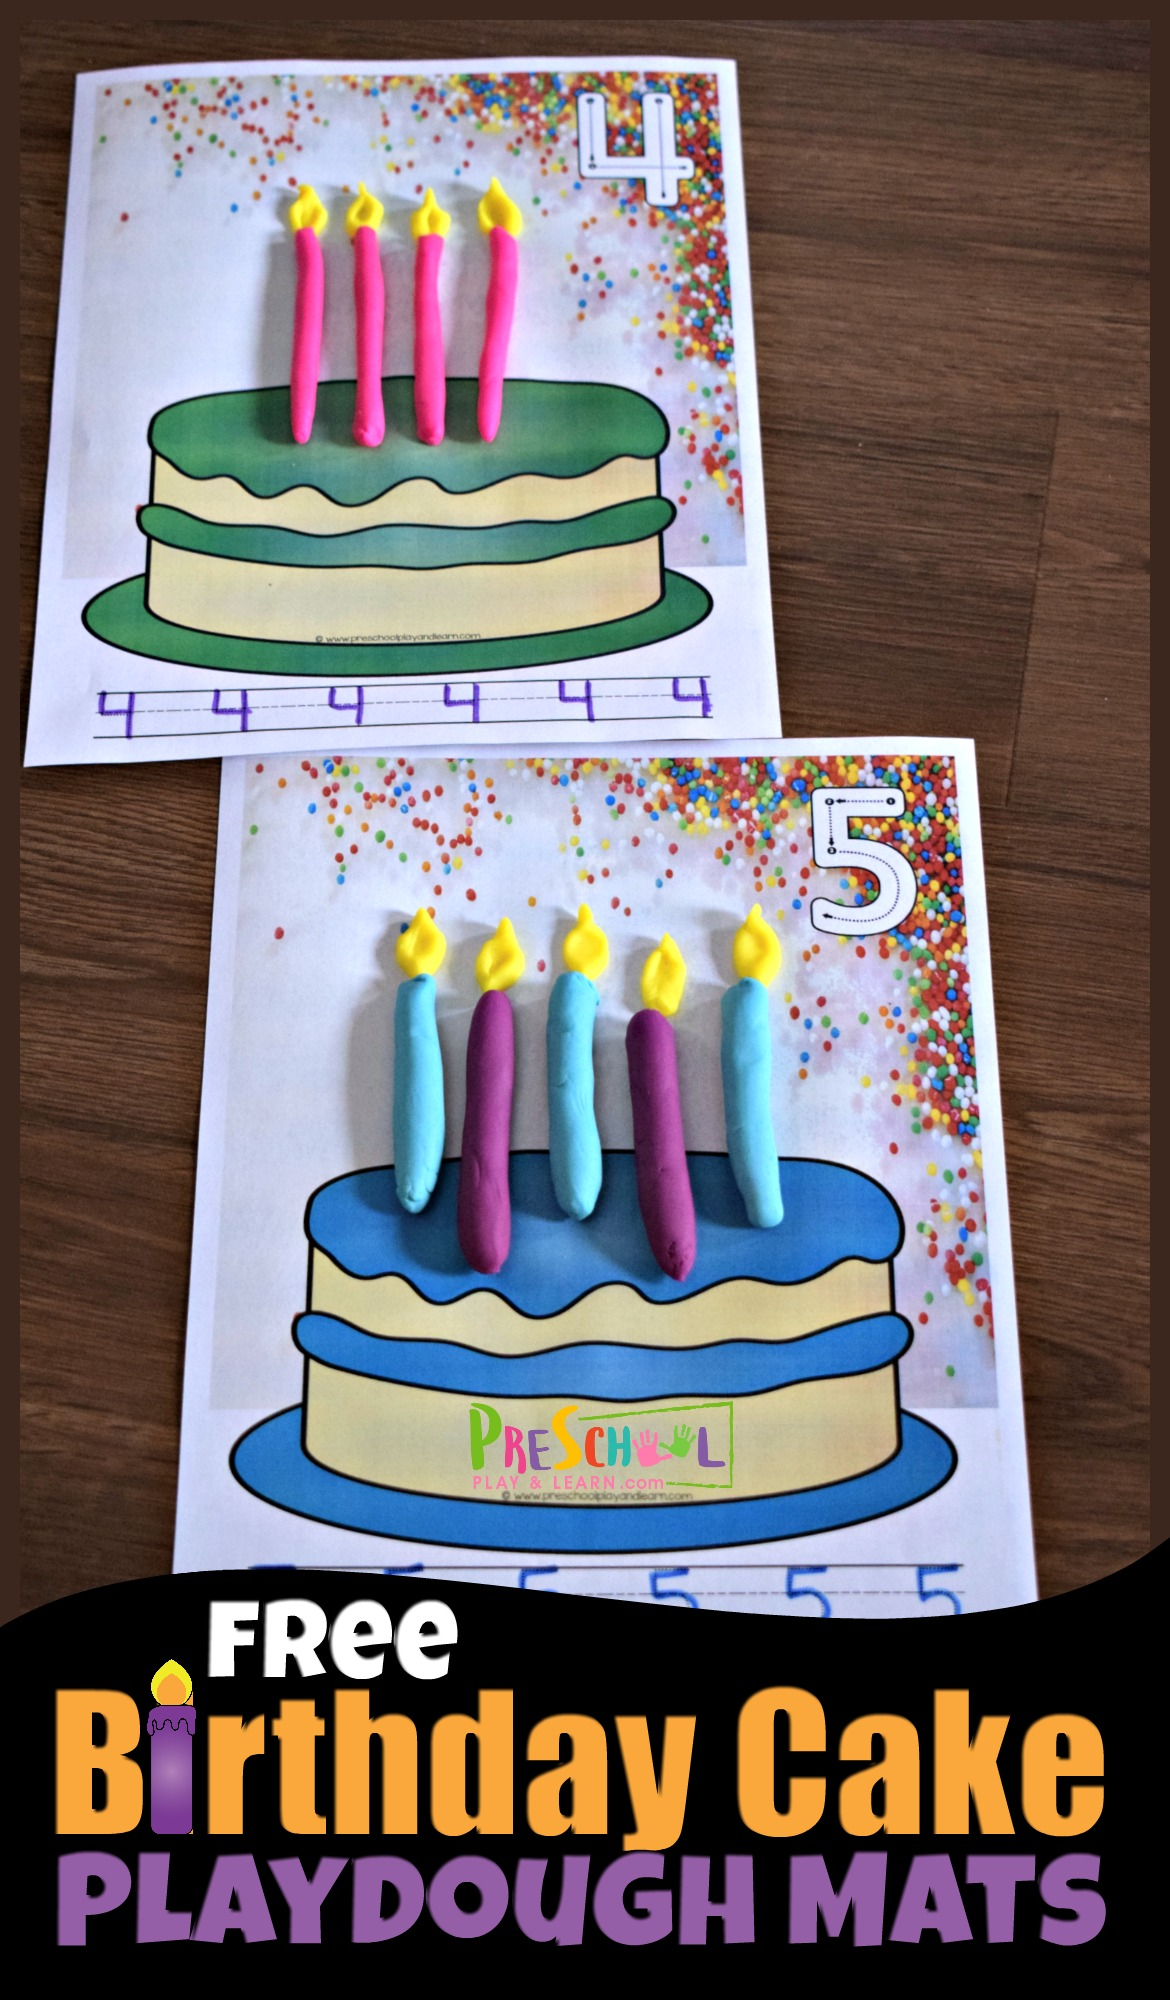 Free Birthday Candles Playdough Mats